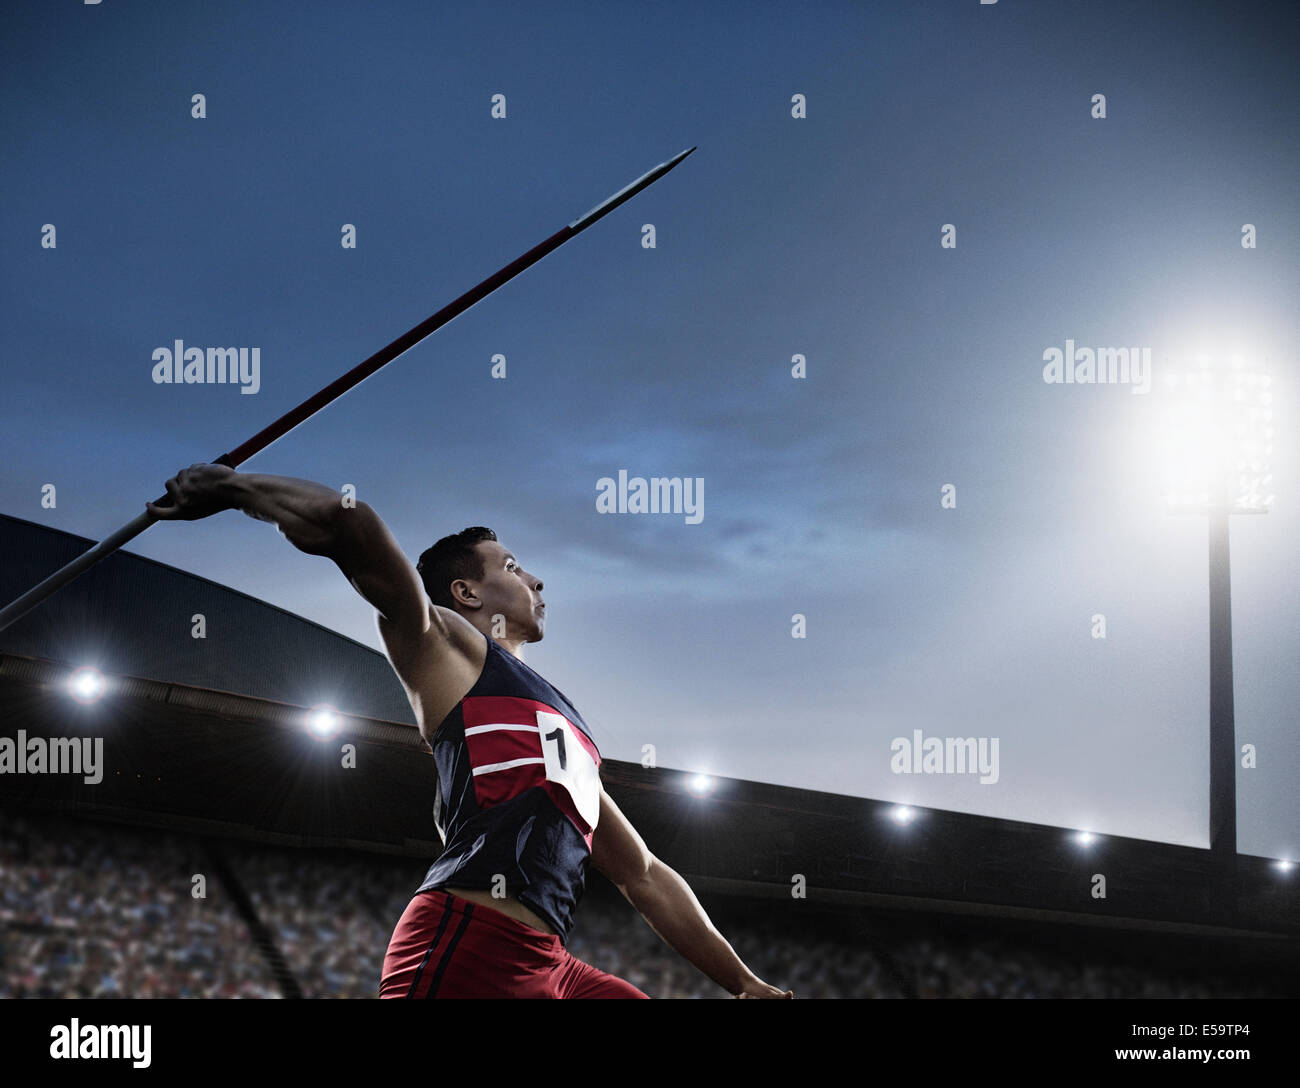 Track and field athlete throwing javelin - Stock Image